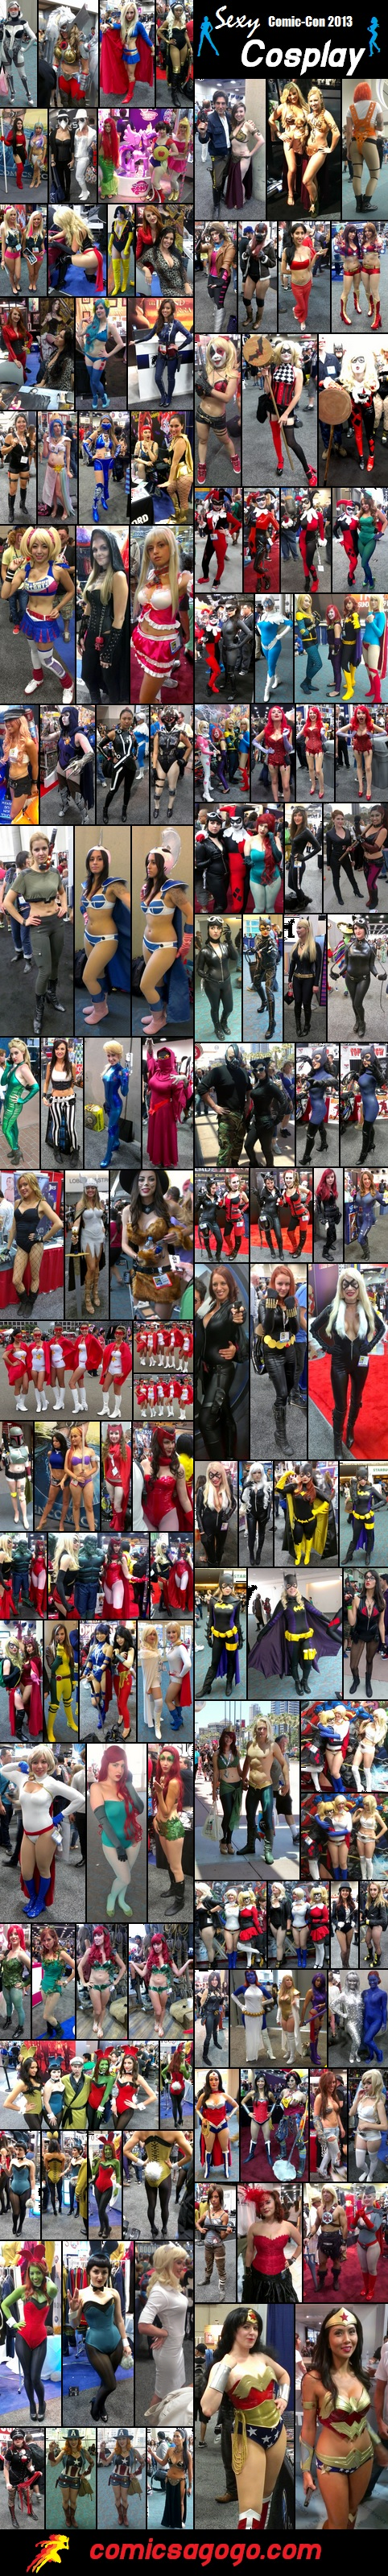 Sexy Cosplay at San Diego Comic-Con 2013